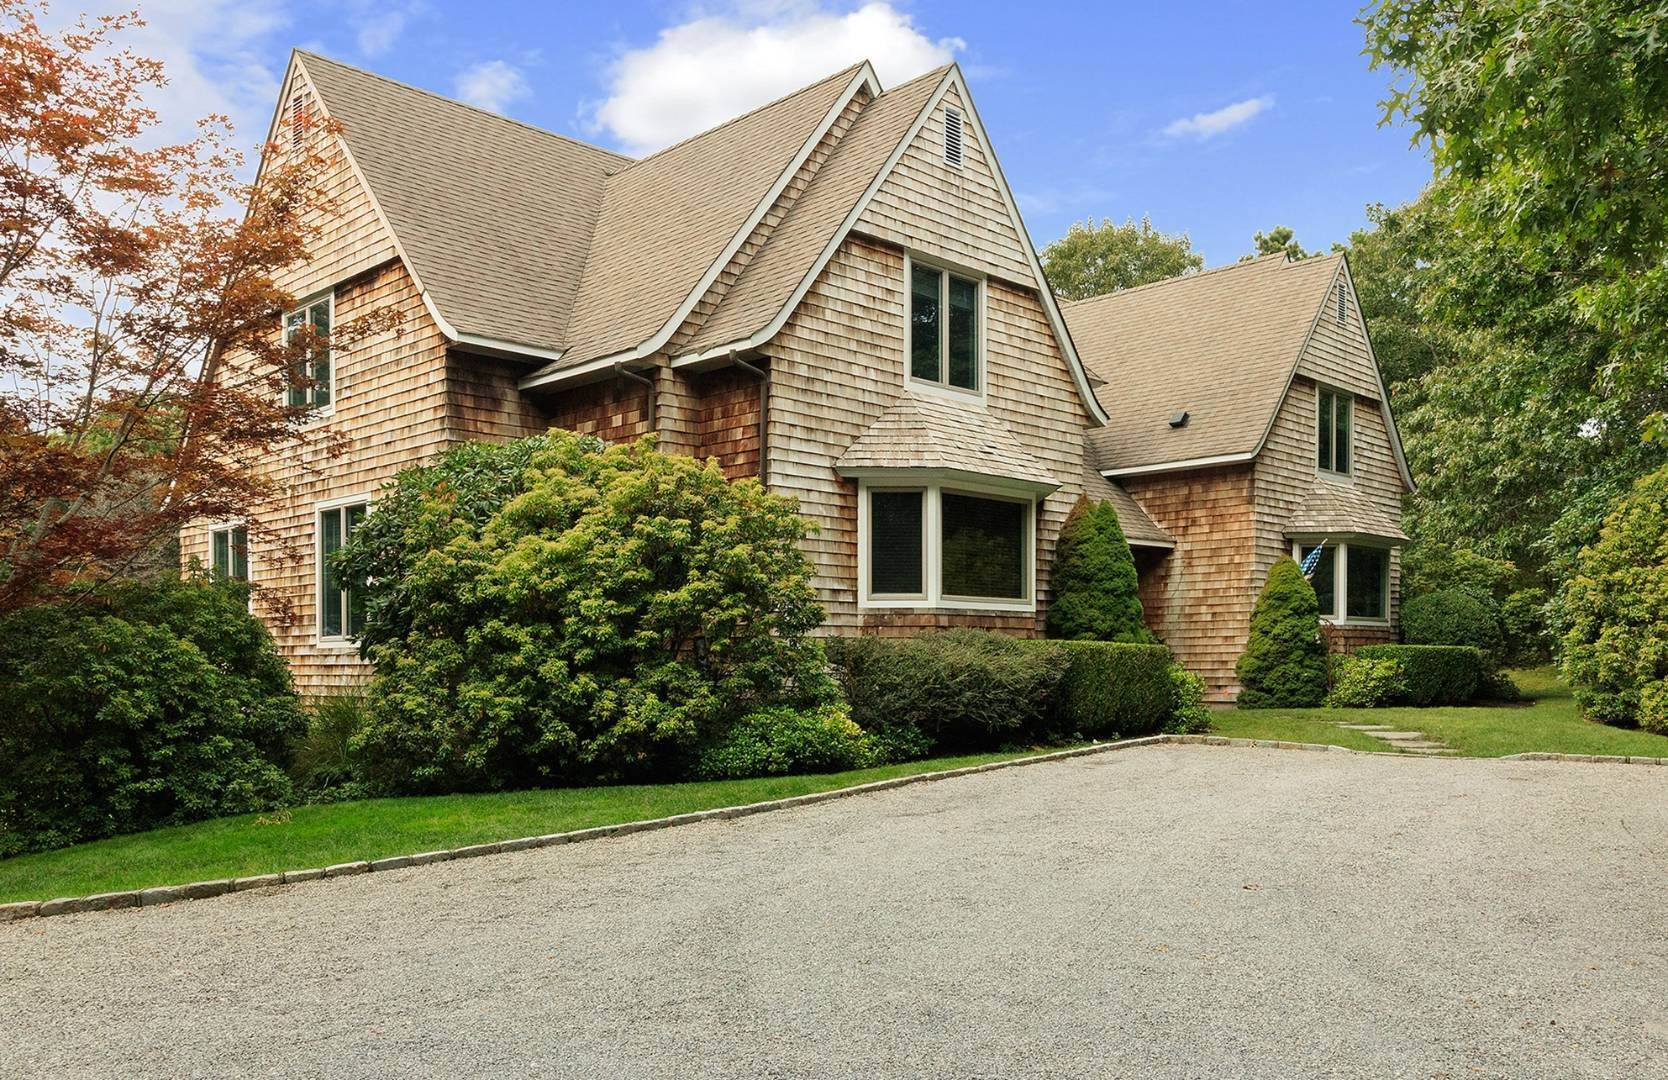 Single Family Home at Elegant Private East Hampton Home For Rent 34 Chatfields Ridge Road, East Hampton, NY 11937